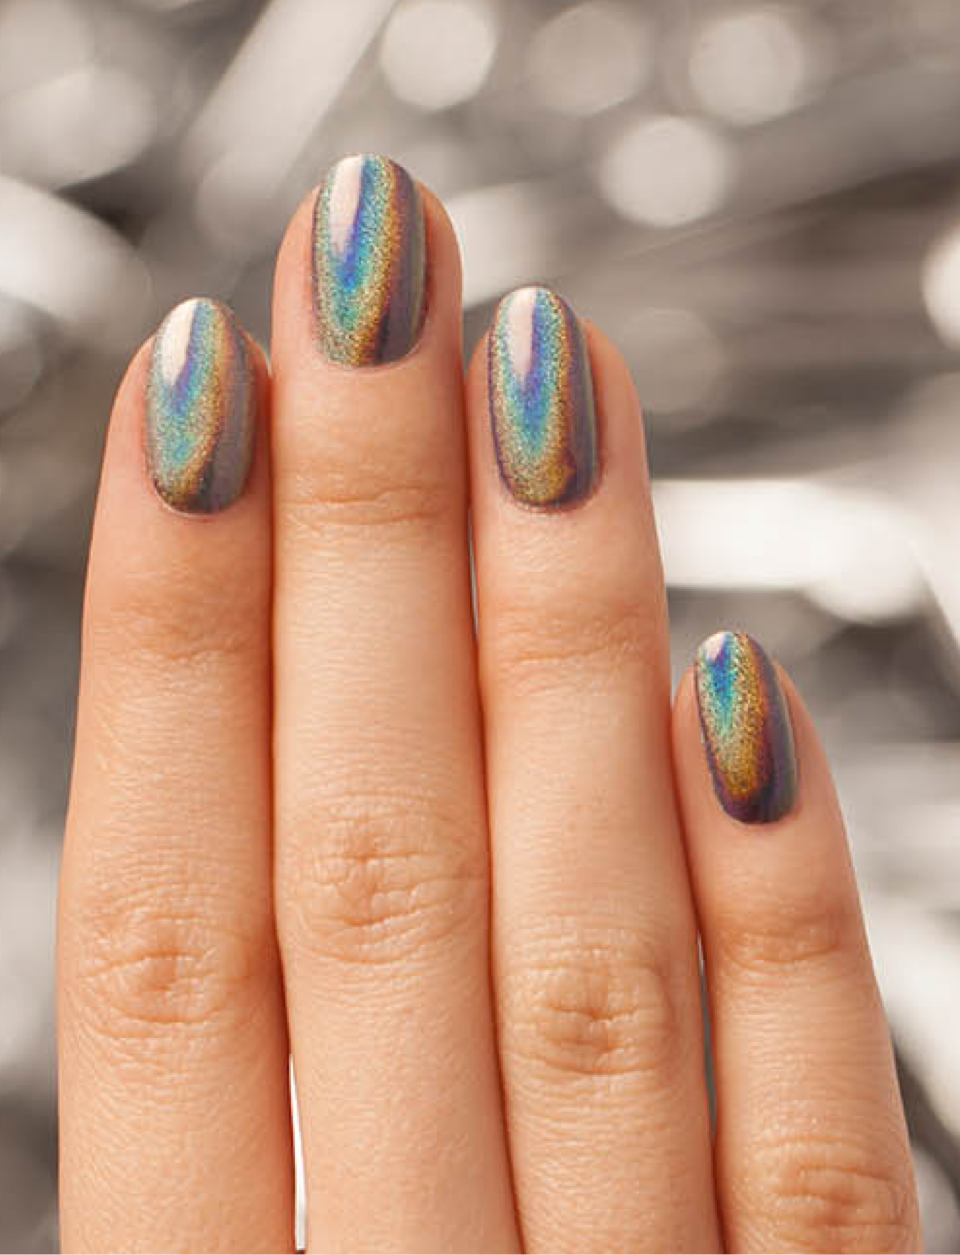 Browse the new OPI Chrome colors